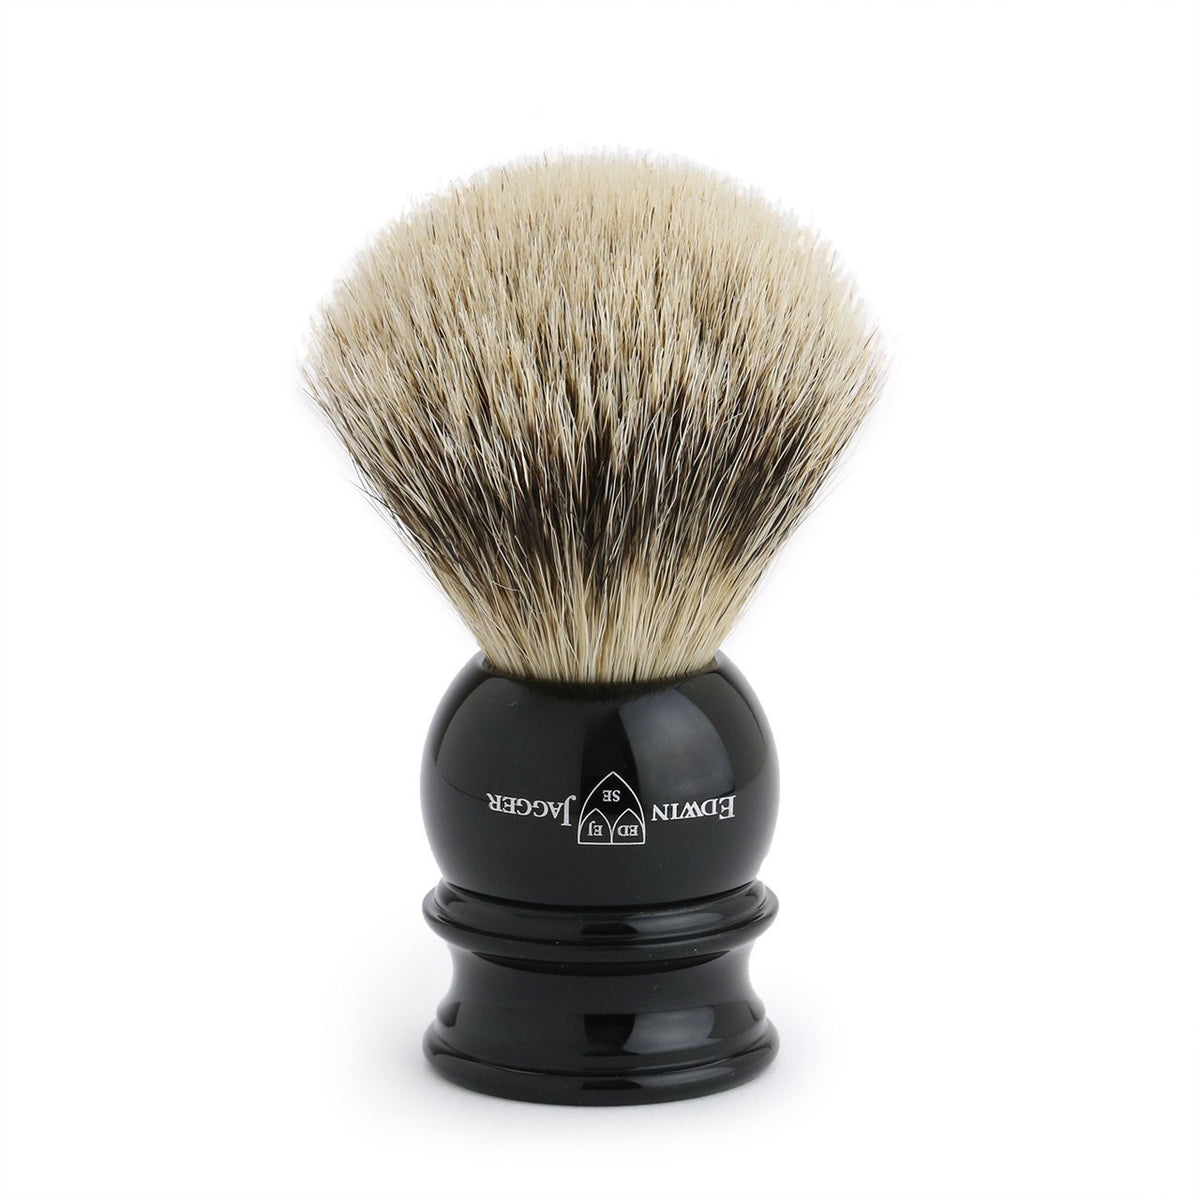 Edwin Jagger Silver Tip Shaving Brush Large - Ebony